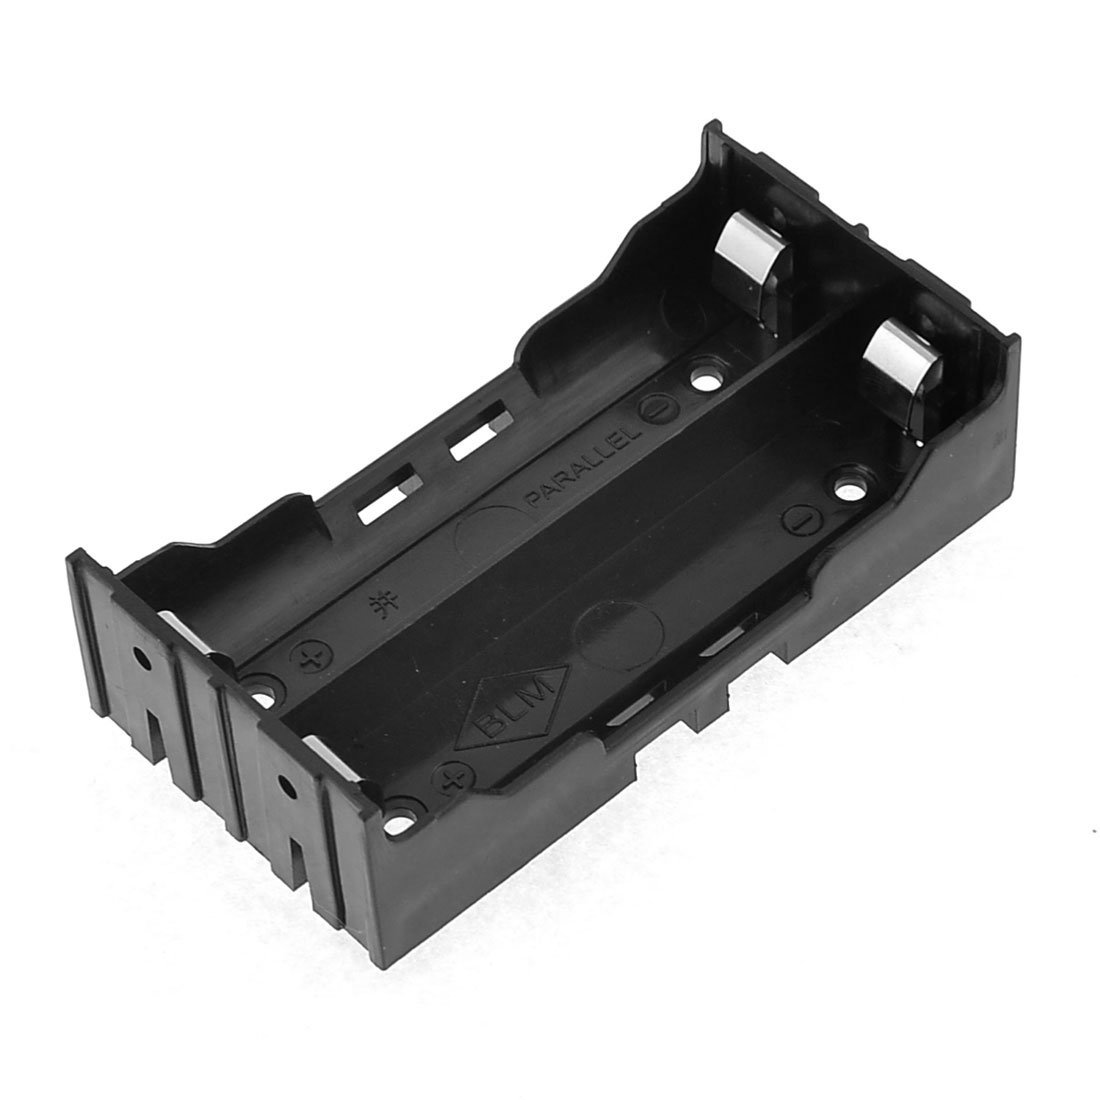 TOOGOO(R) Black Battery Holder 4 Pins for 2x18650 Rechargeable Li-ion Batteries by TOOGOO(R) (Image #1)